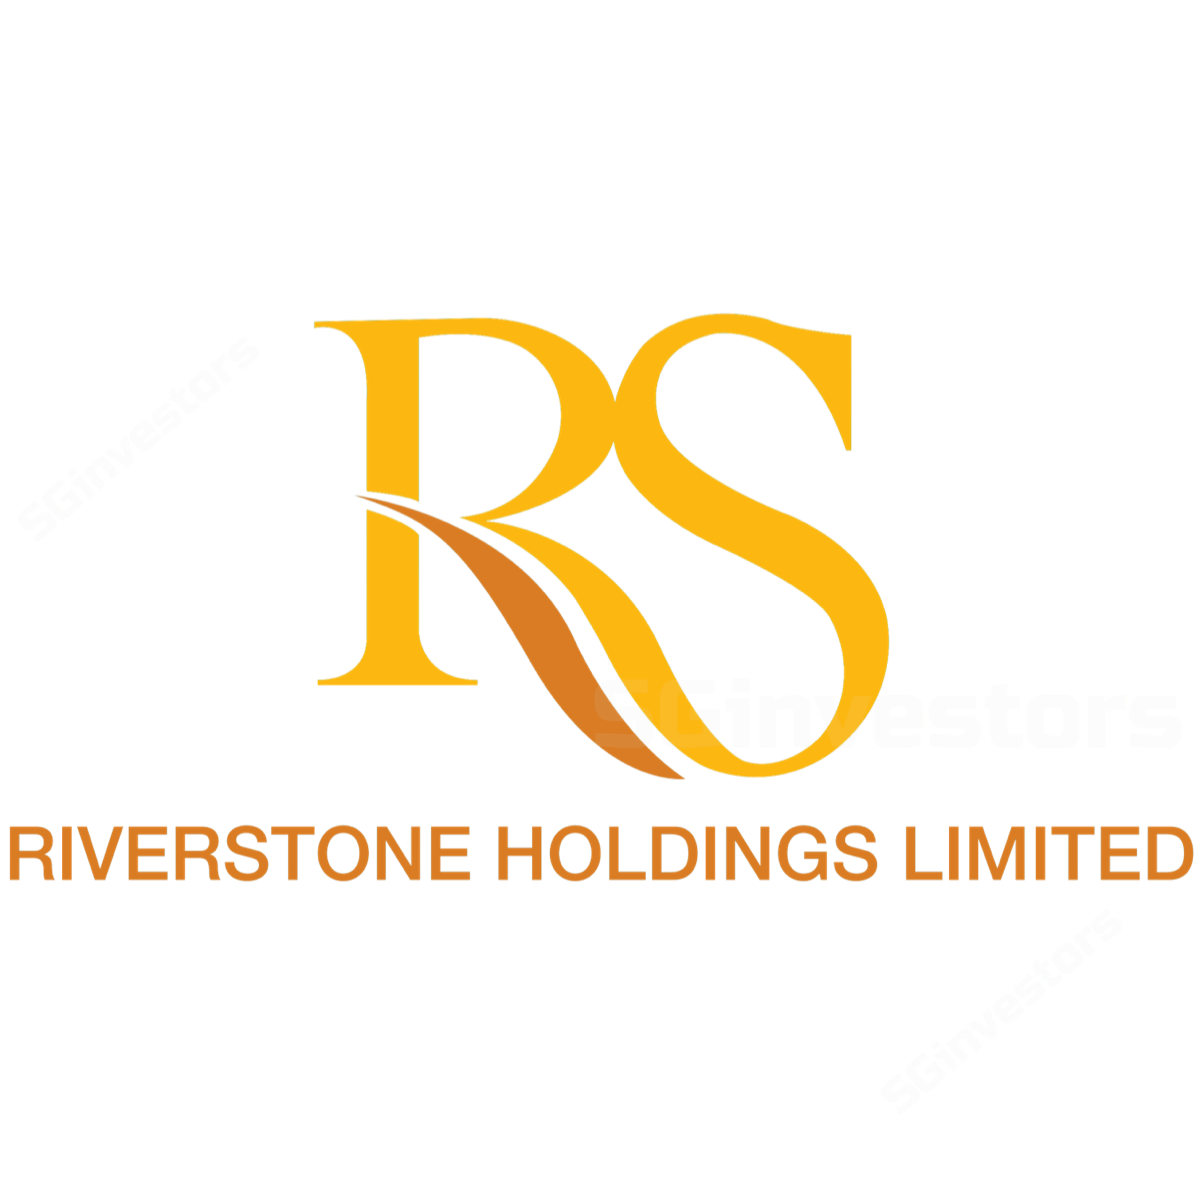 Riverstone Holdings - CIMB Research 2017-02-23: Smooth execution amid competitive landscape